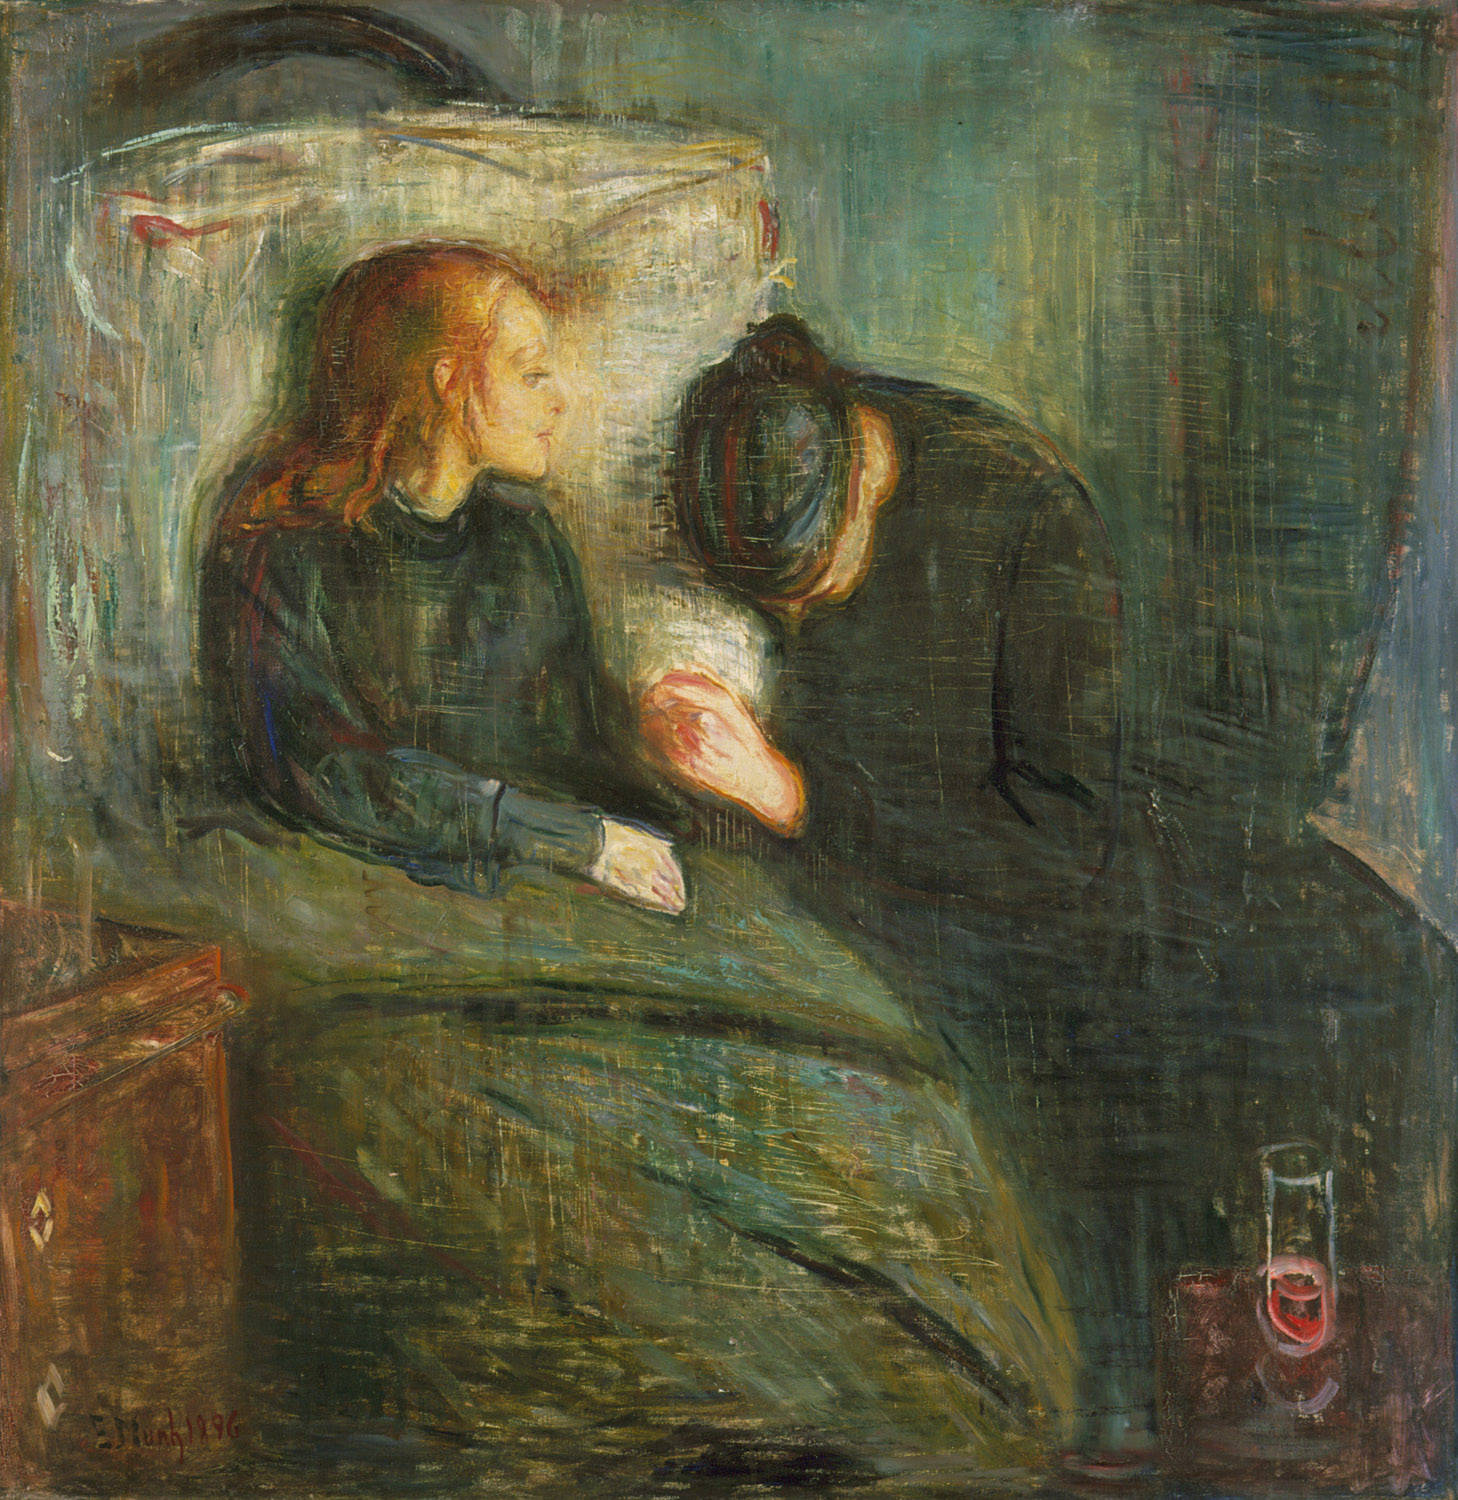 The Sick Child by Edvard Munch in 1896